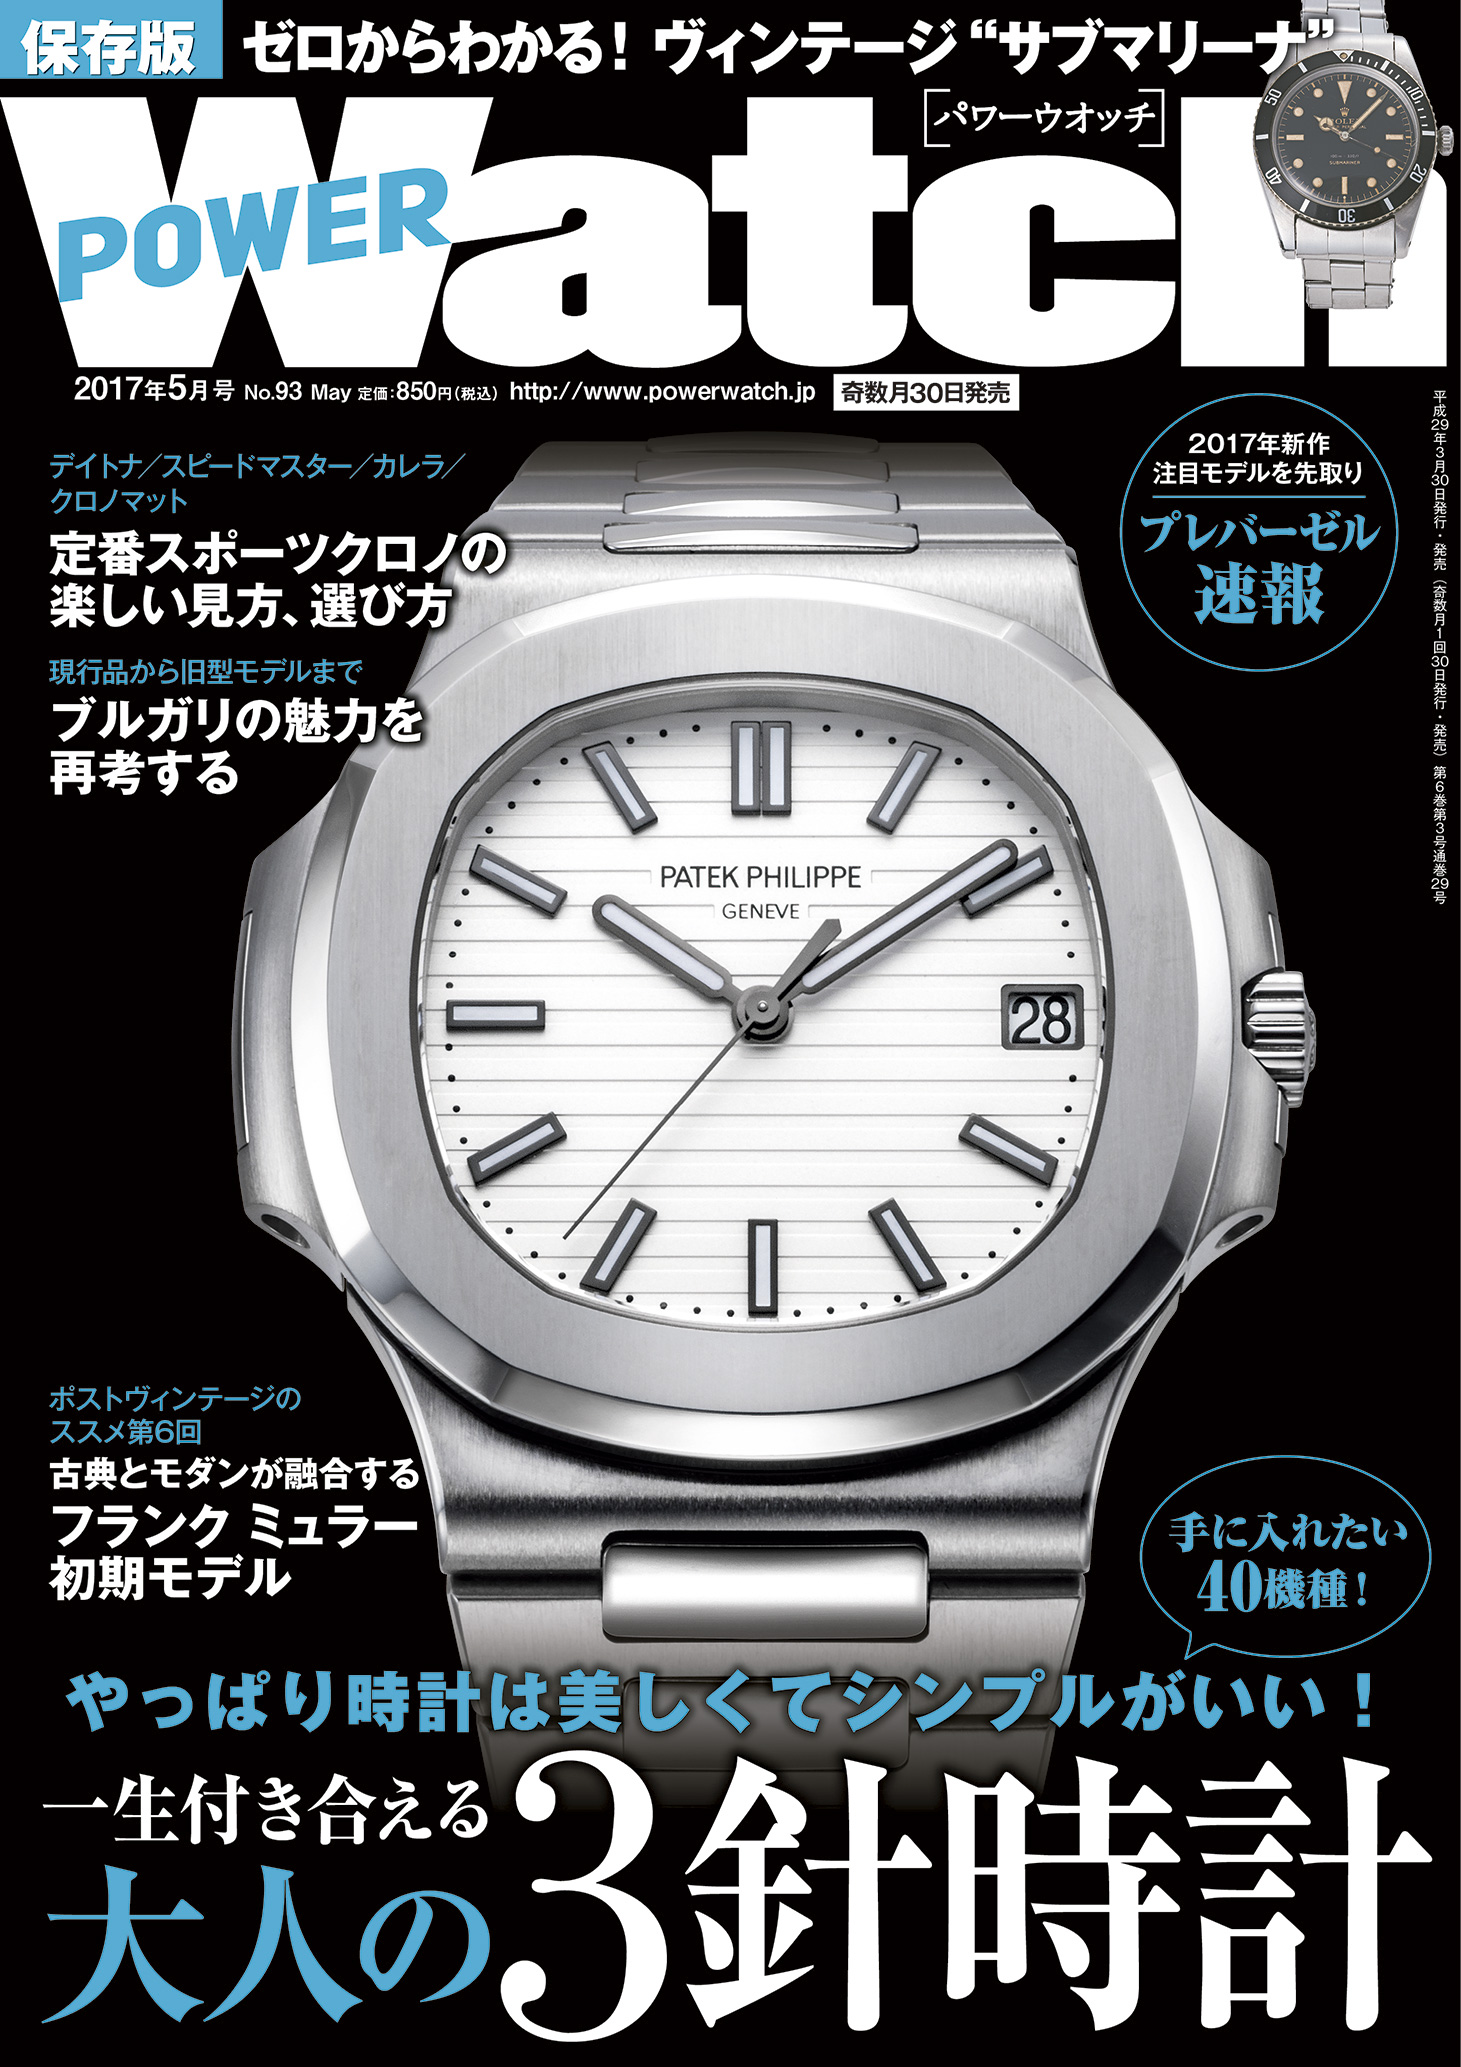 C's-Factory|電子書籍|POWER Watch No.93